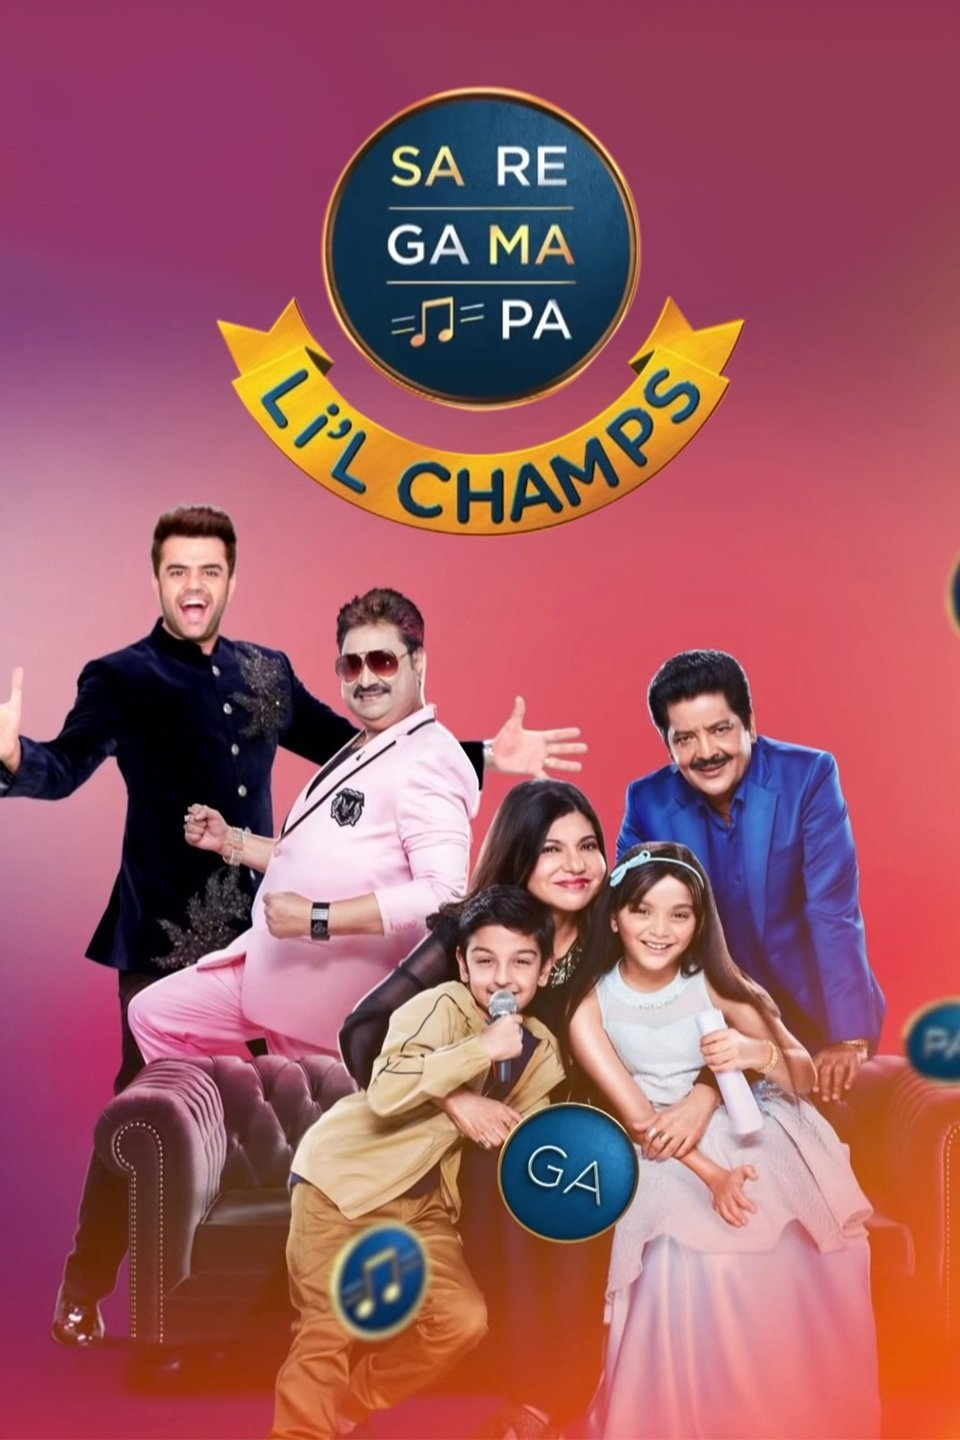 Kapil Sharma Khatron Ke Khiladi Made In India India Best Dancer Sa Re Ga Ma Pa Lil Champs 6th September 2020 All DL